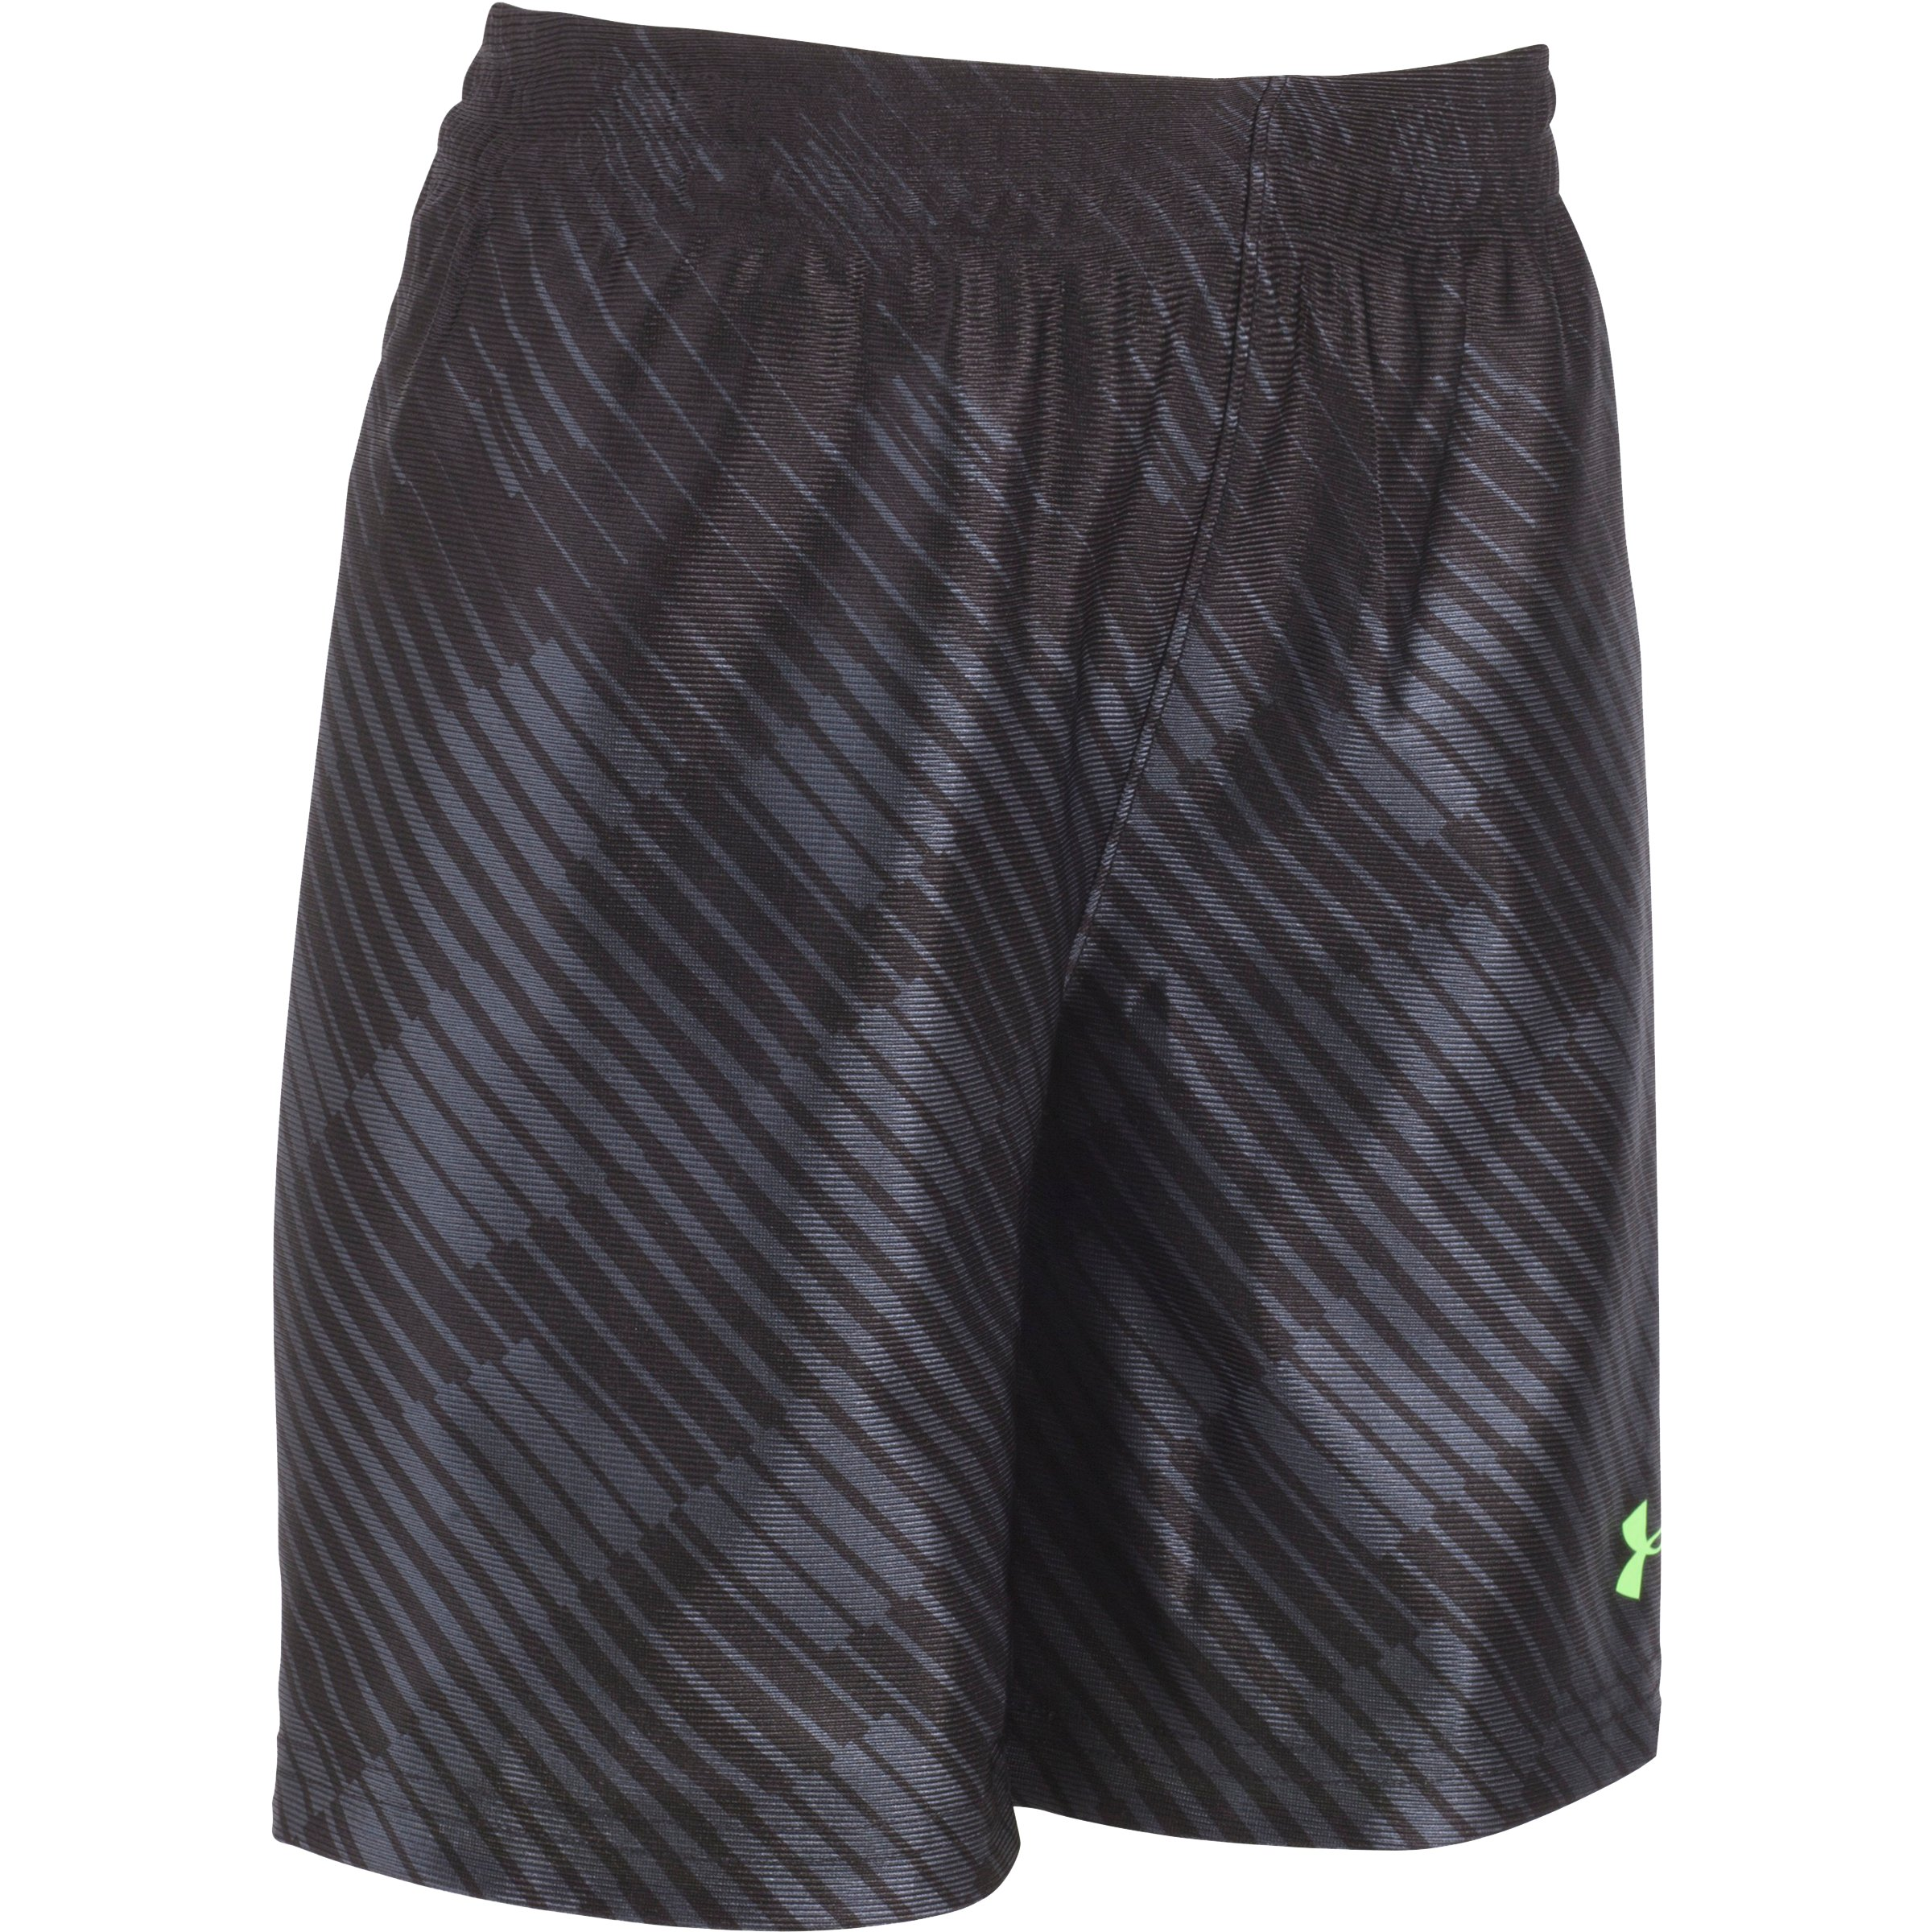 Boys' Toddler UA Tilt Shift Eliminator Shorts, Black